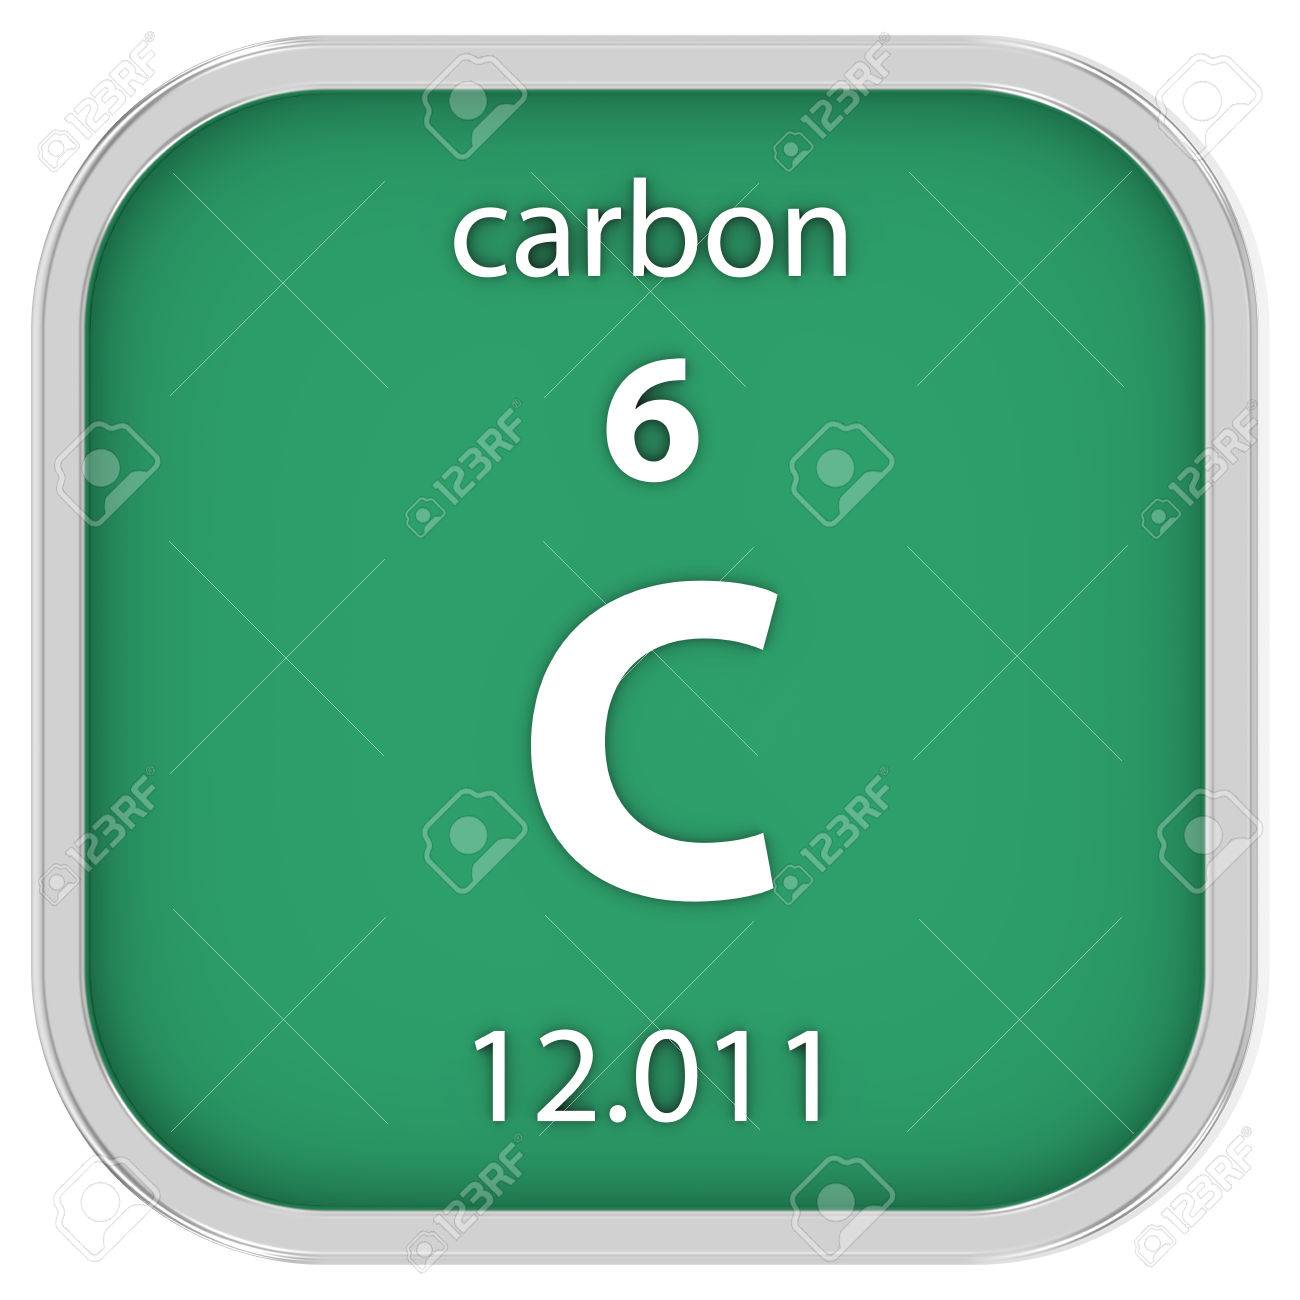 What is the symbol for carbon on the periodic table image carbon on the periodic table image collections periodic table images carbon material on the periodic table gamestrikefo Gallery